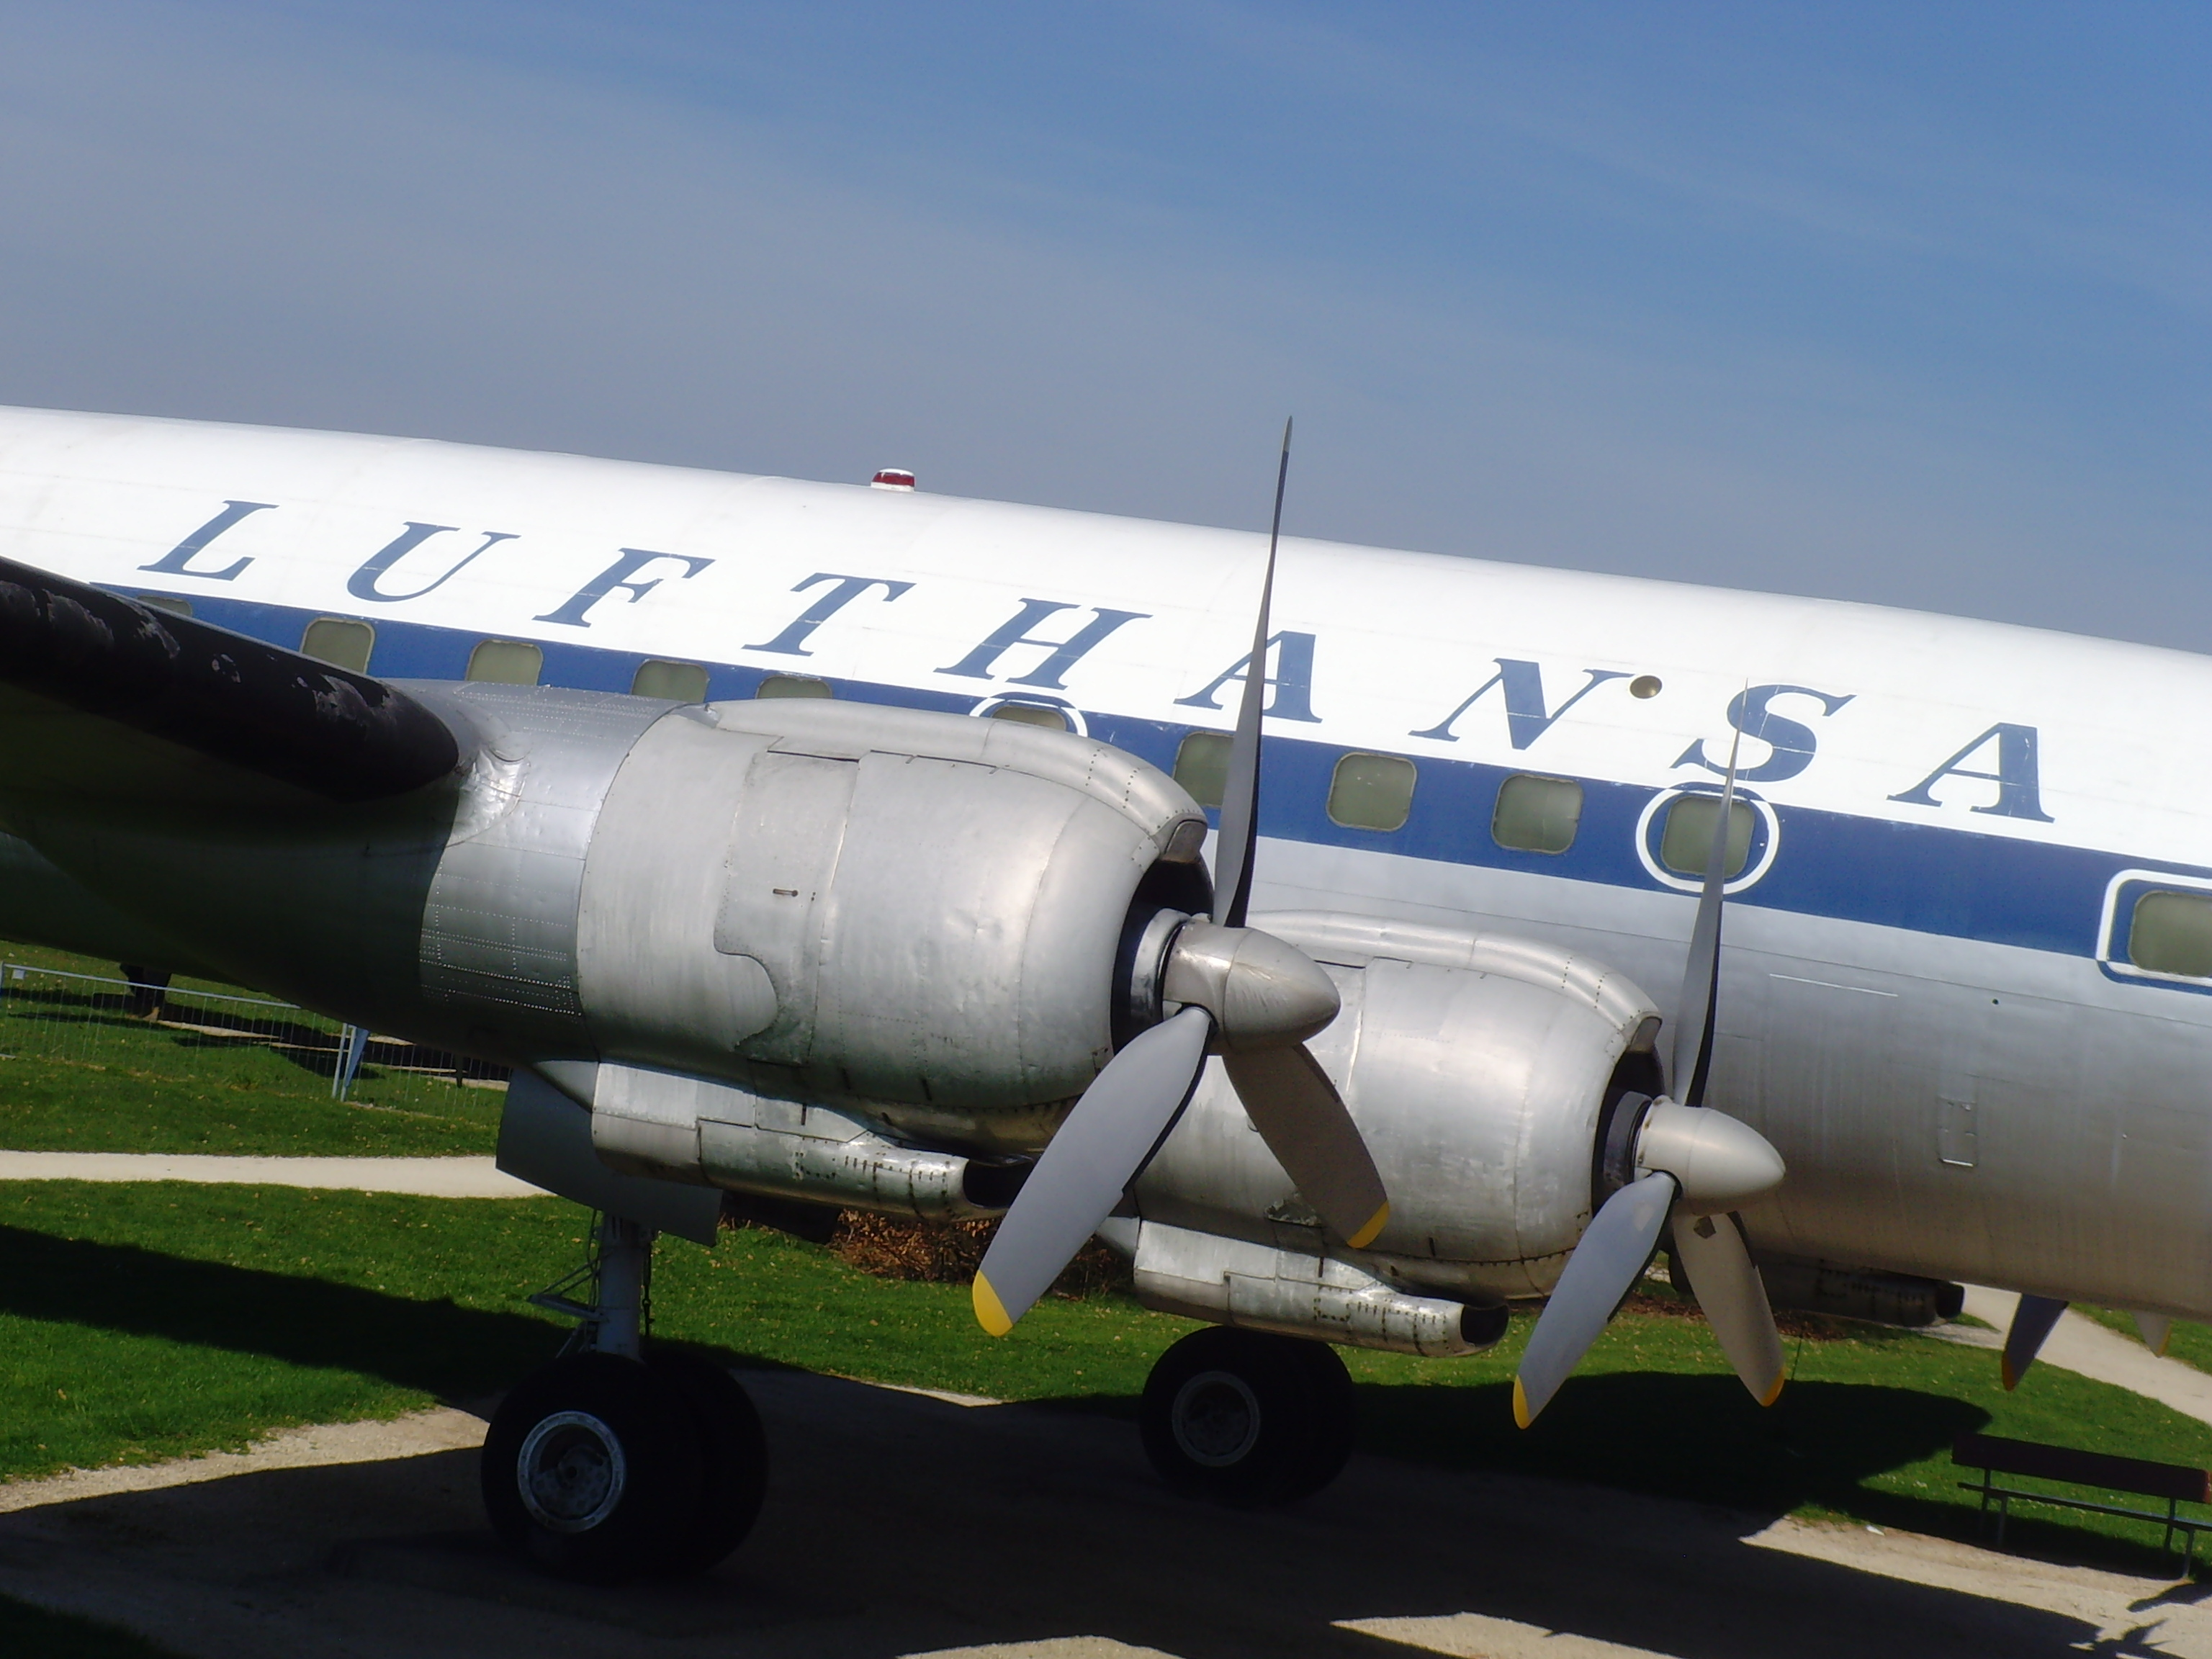 File:Flugausstellung Hermeskeil Lockheed L-1049 G Super Constellation - 2 -  Flickr -